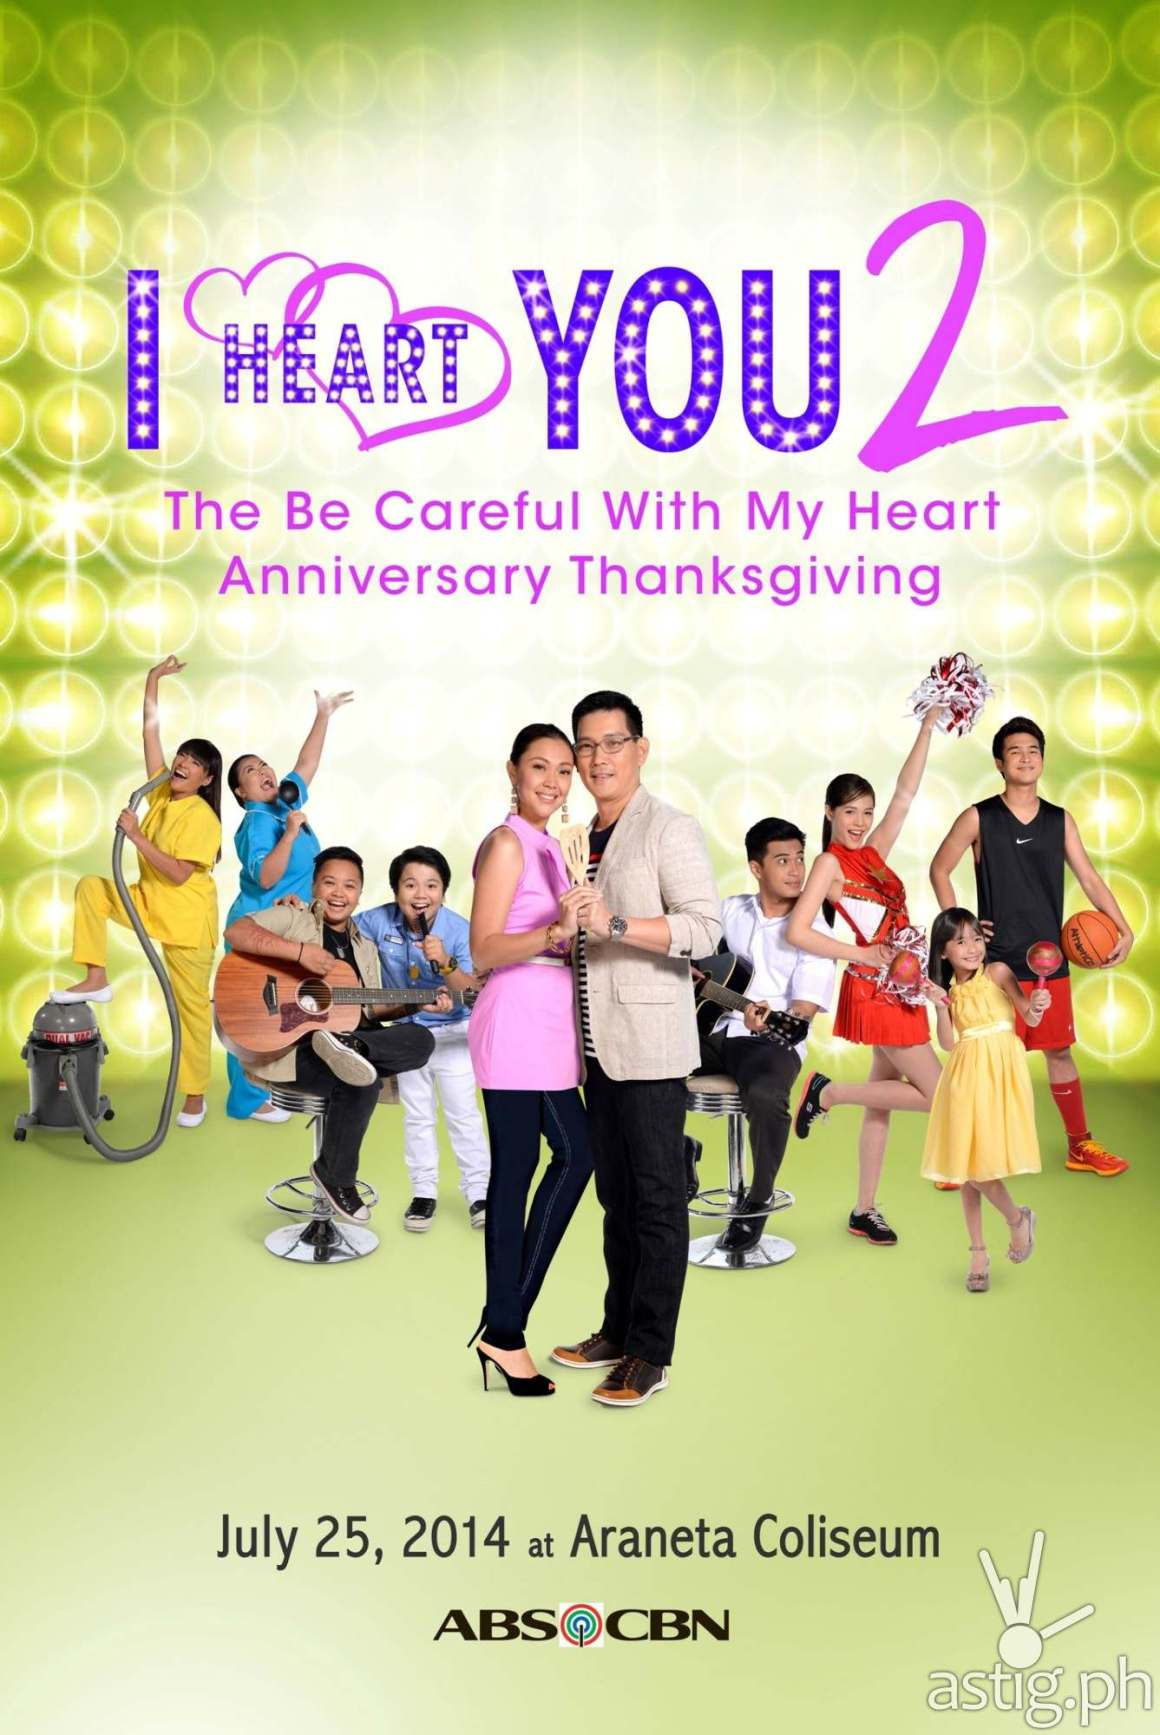 Be Careful With My Heart I Heart You 2 Anniversary Thanksgiving concert poster